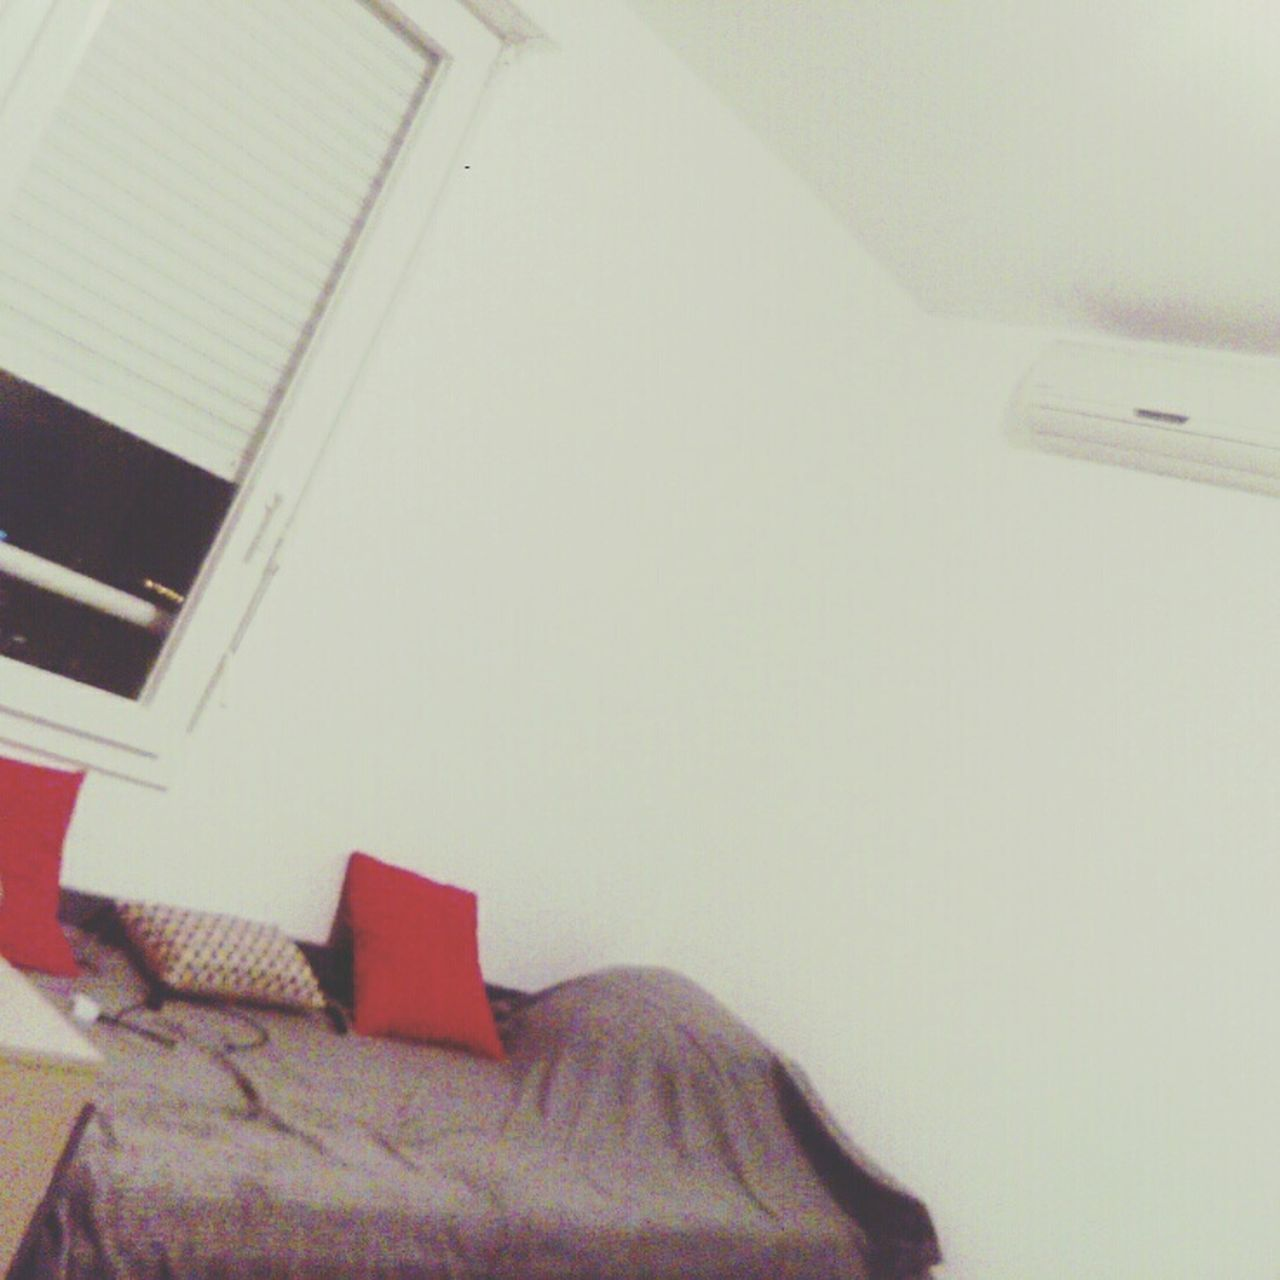 indoors, home interior, low angle view, bed, no people, bedroom, day, close-up